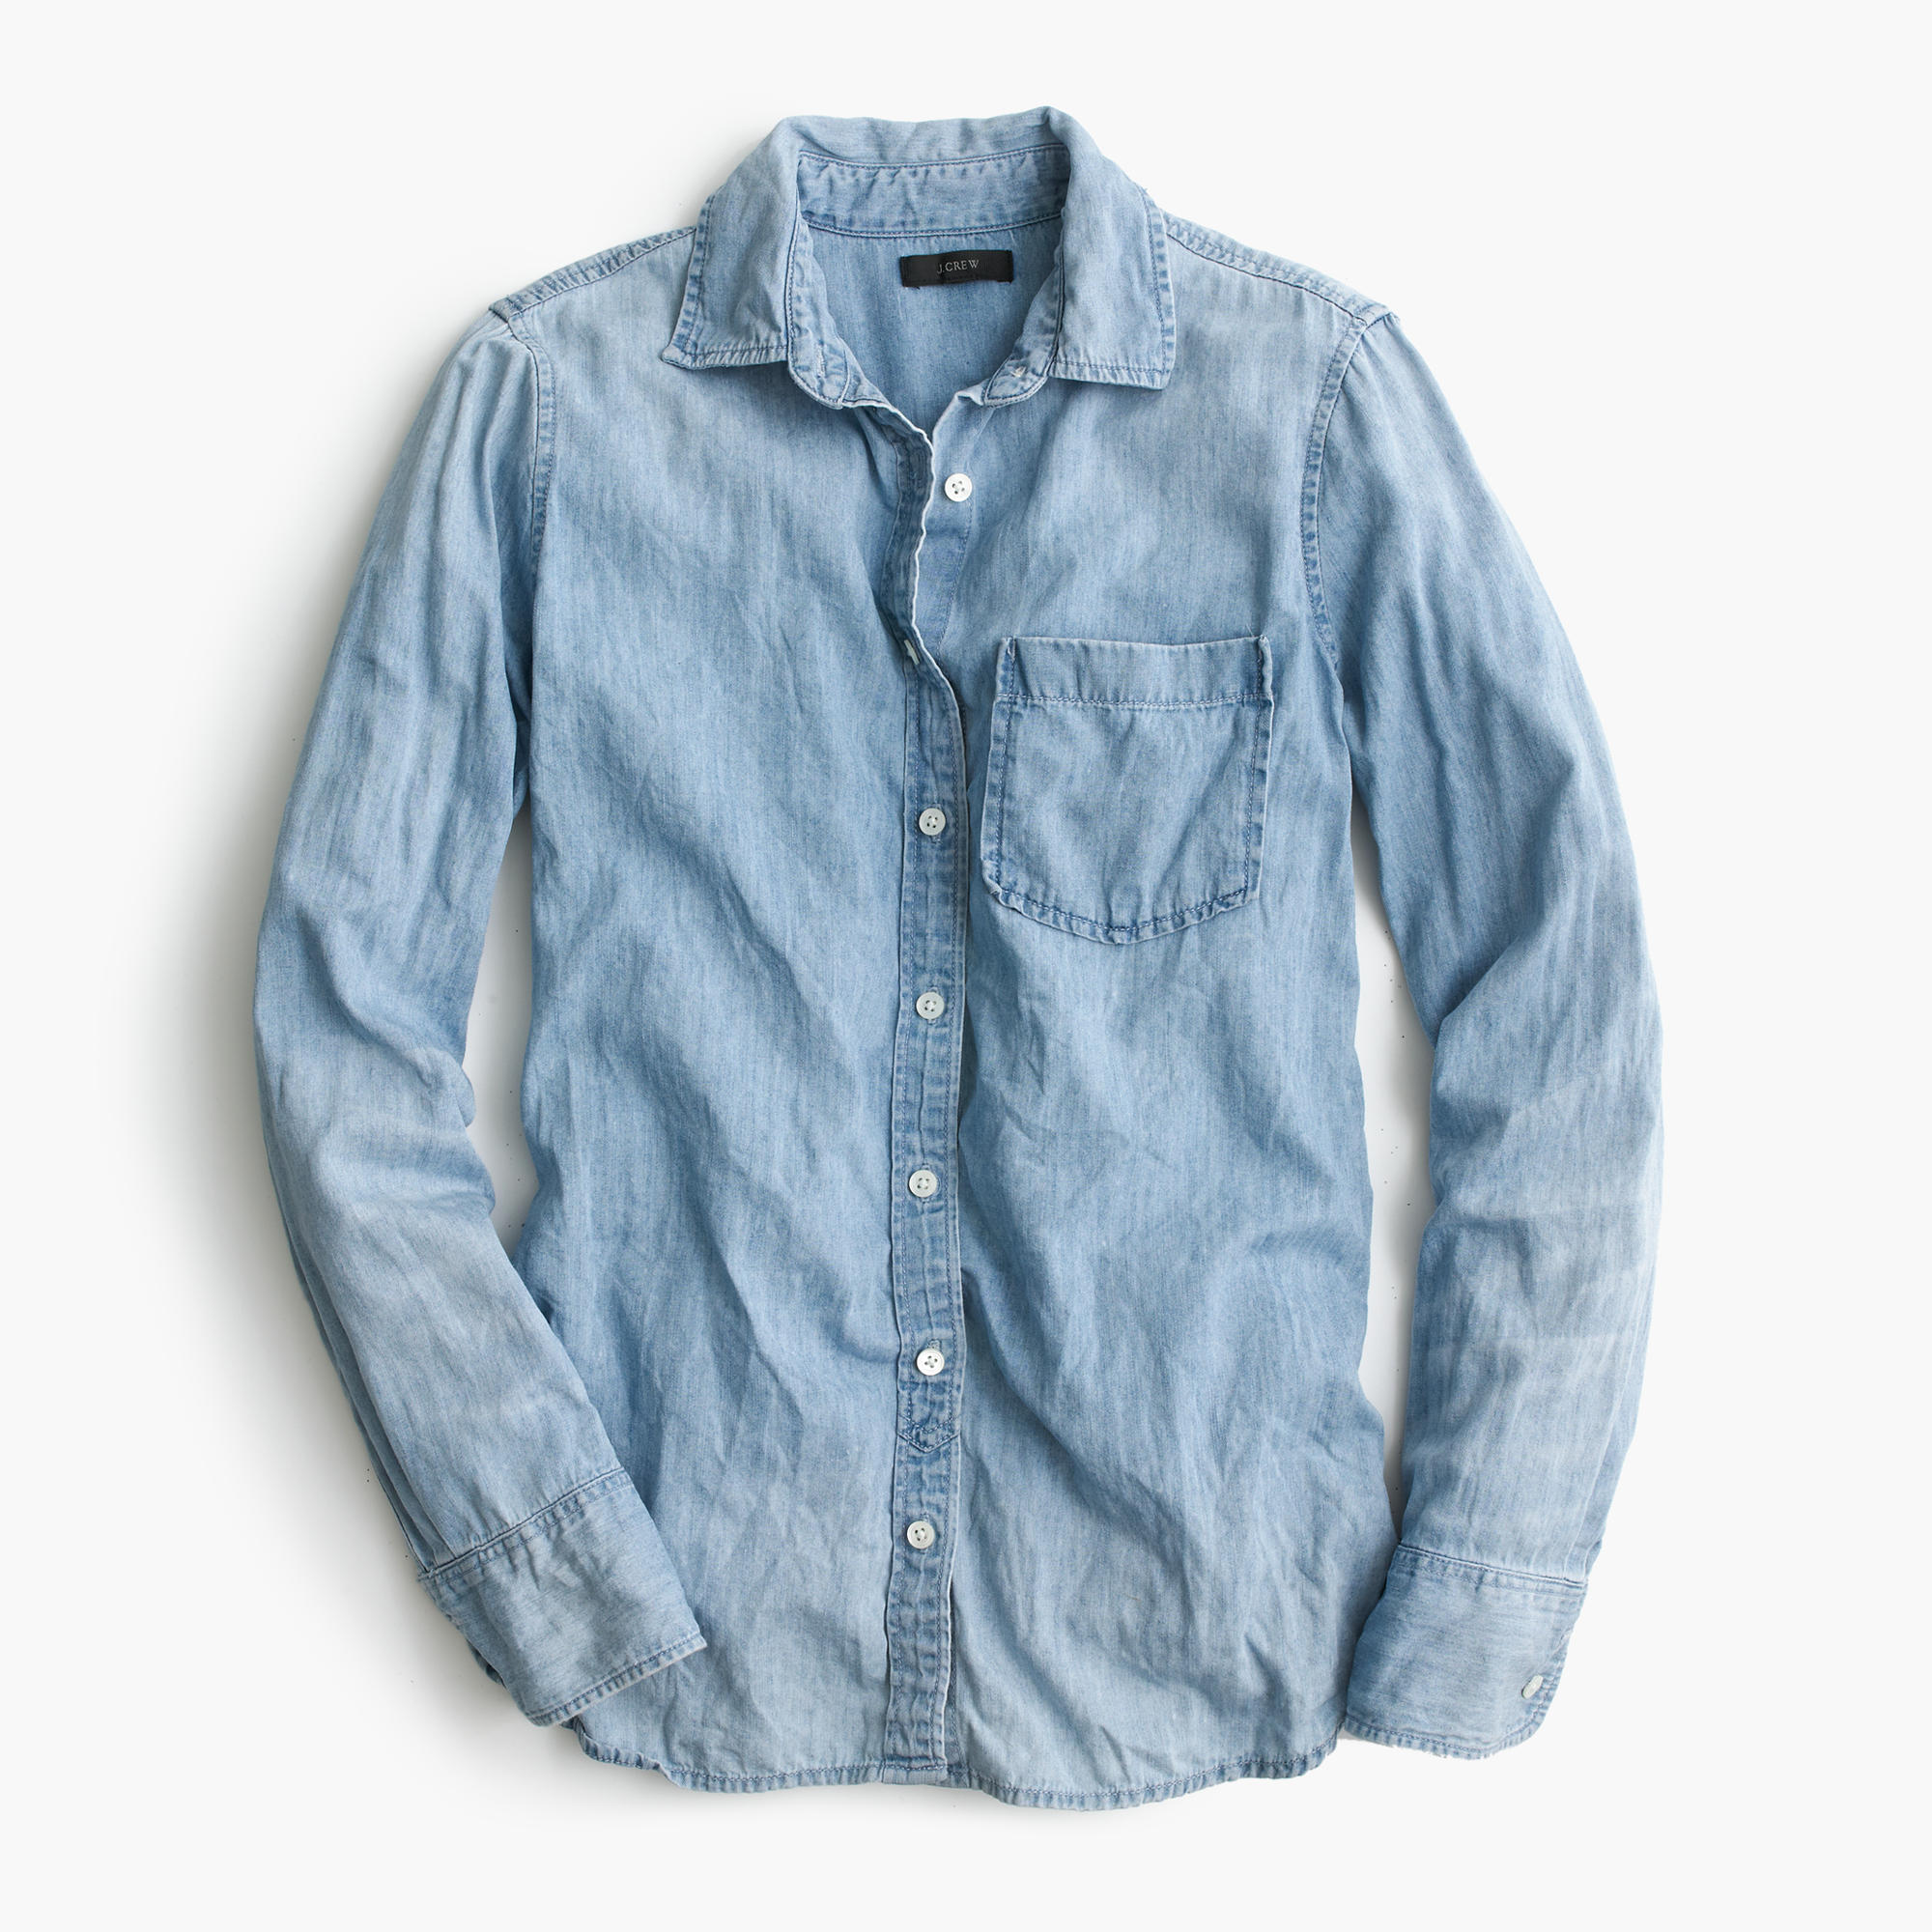 J. Crew chambray shirt—15 wardrobe classics for $150 and under